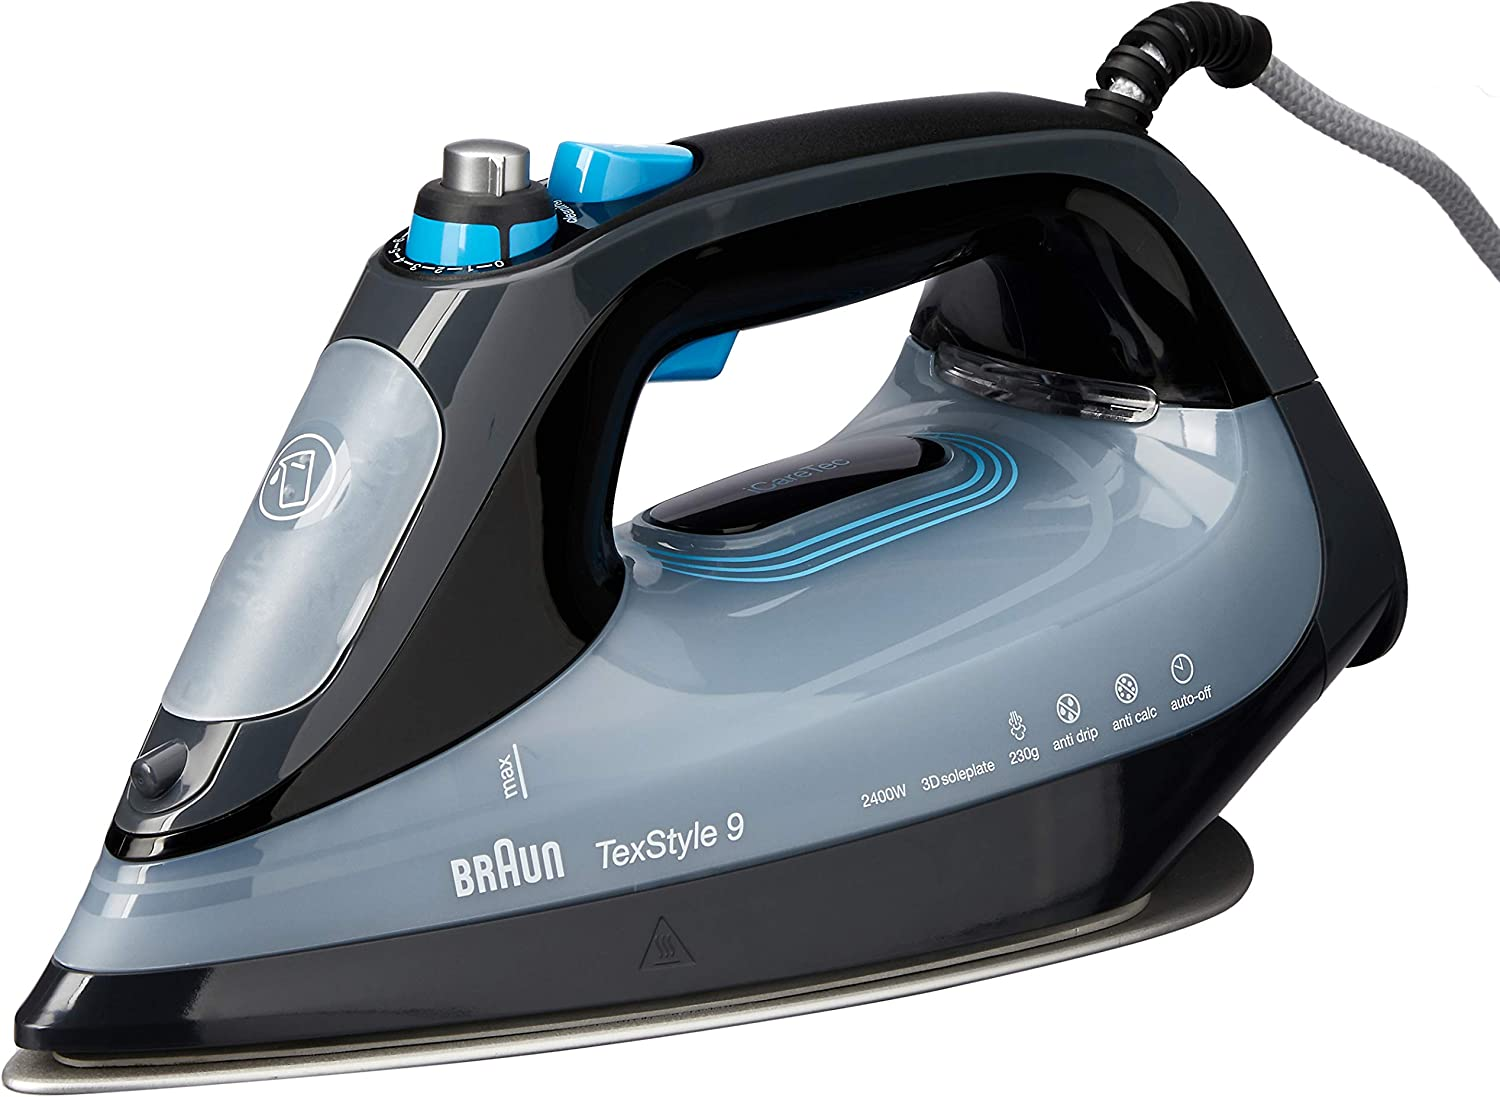 Braun TexStyle 9 Steam Iron Review